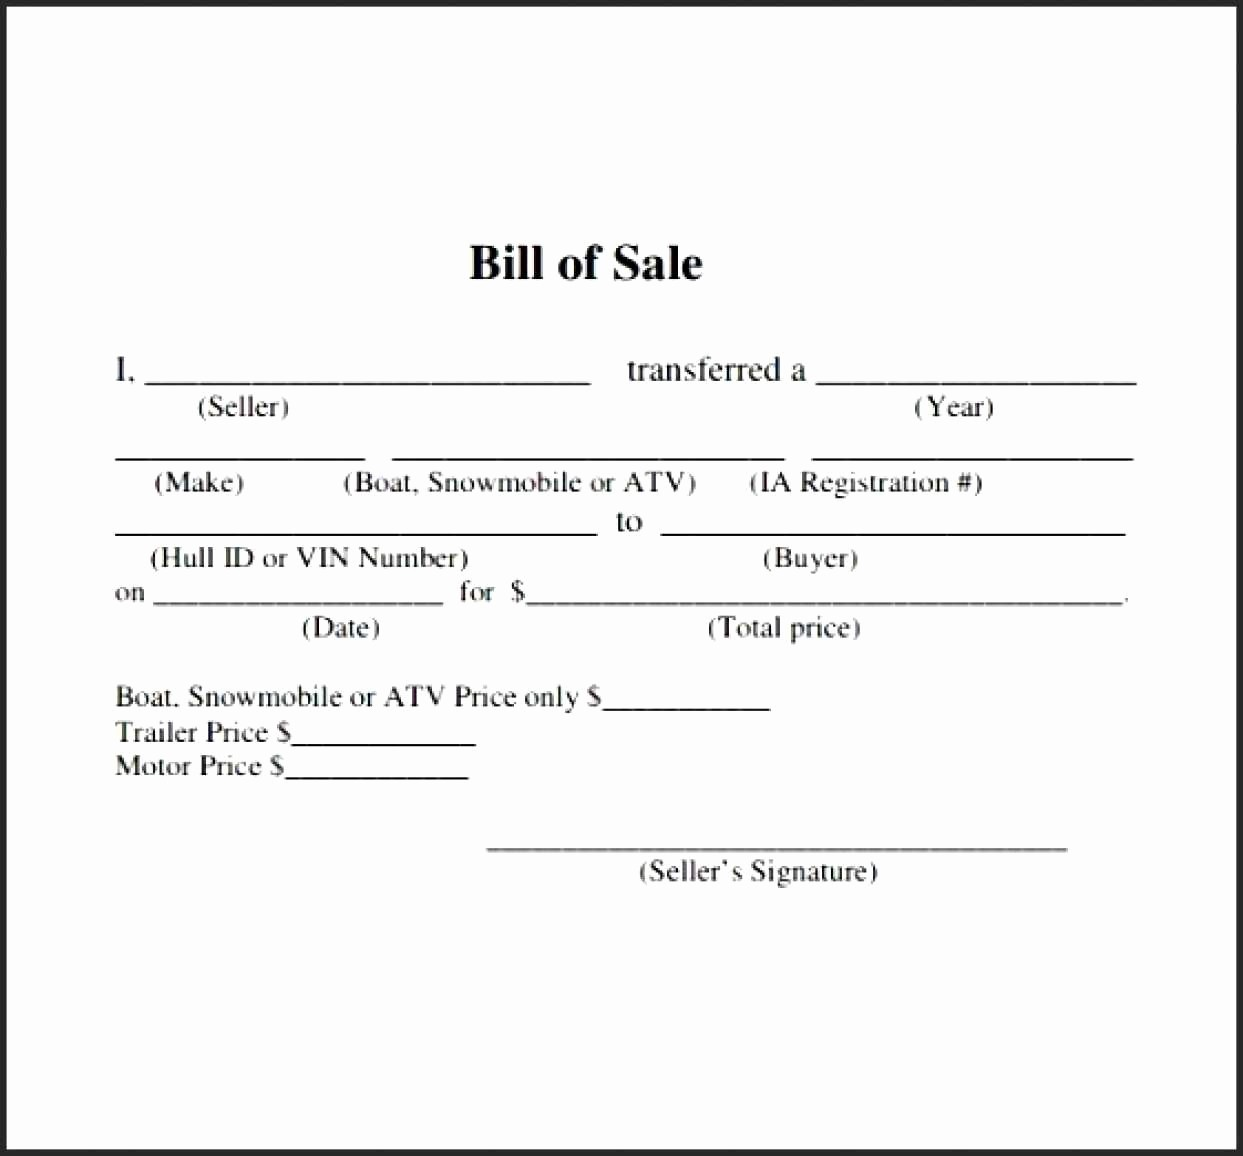 Nc Auto Bill Of Sale Lovely Bill Sale Template Nc Sample Worksheets Boat Handgun